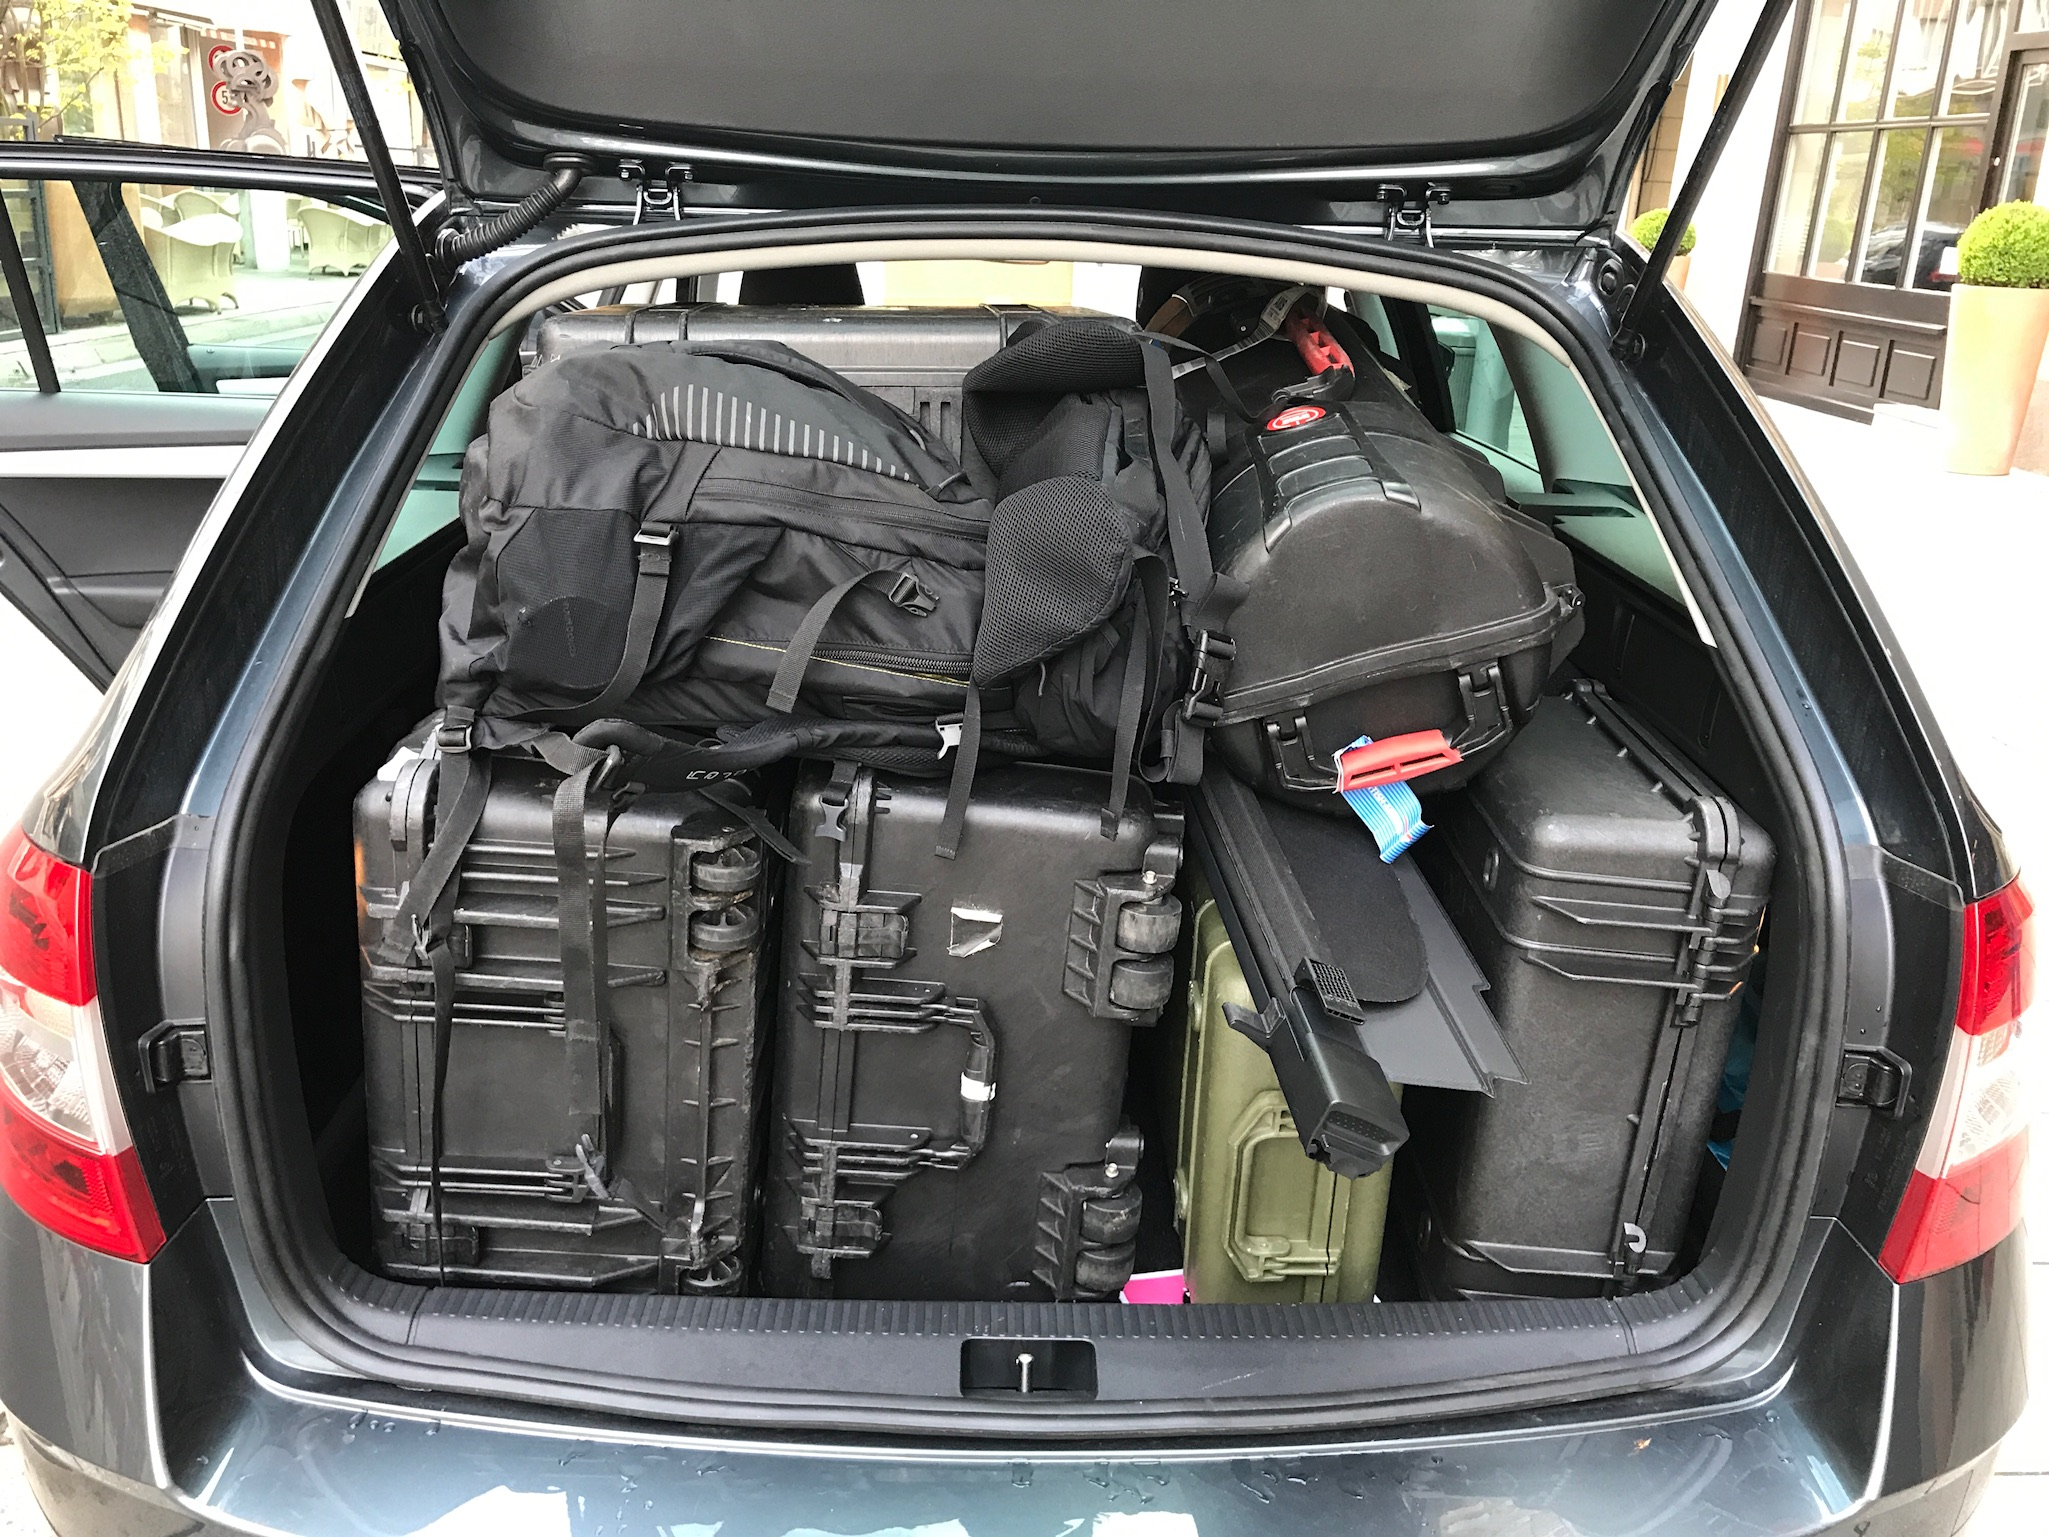 Production crews do not travel light.